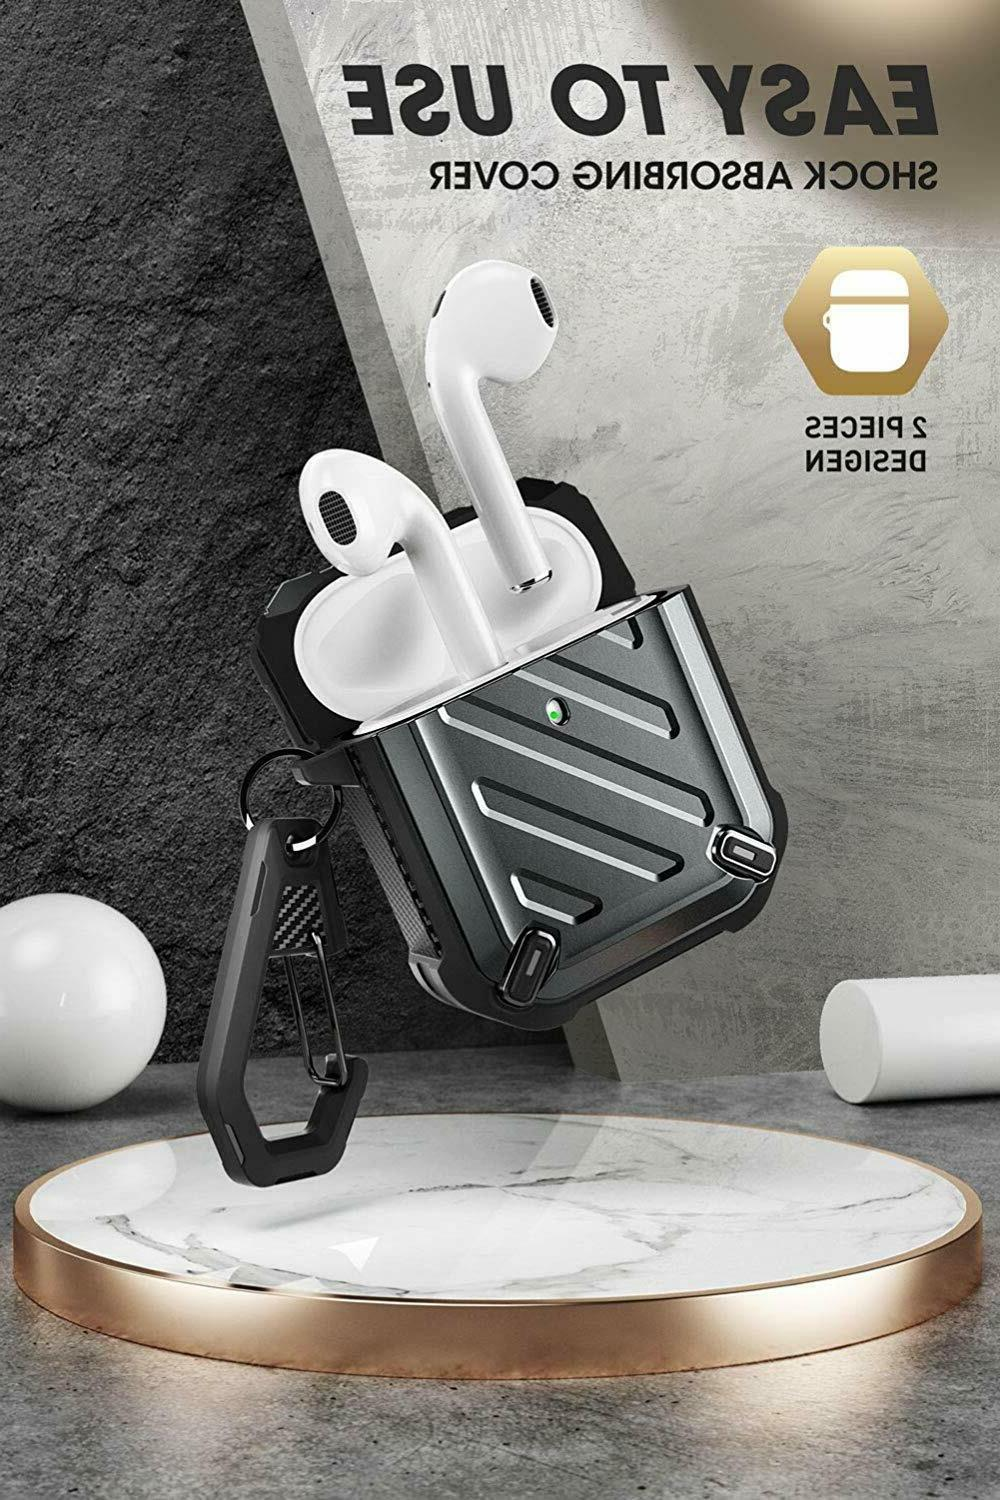 For Airpods / 2nd Case SUPCASE UB Rugged Protective AirPods